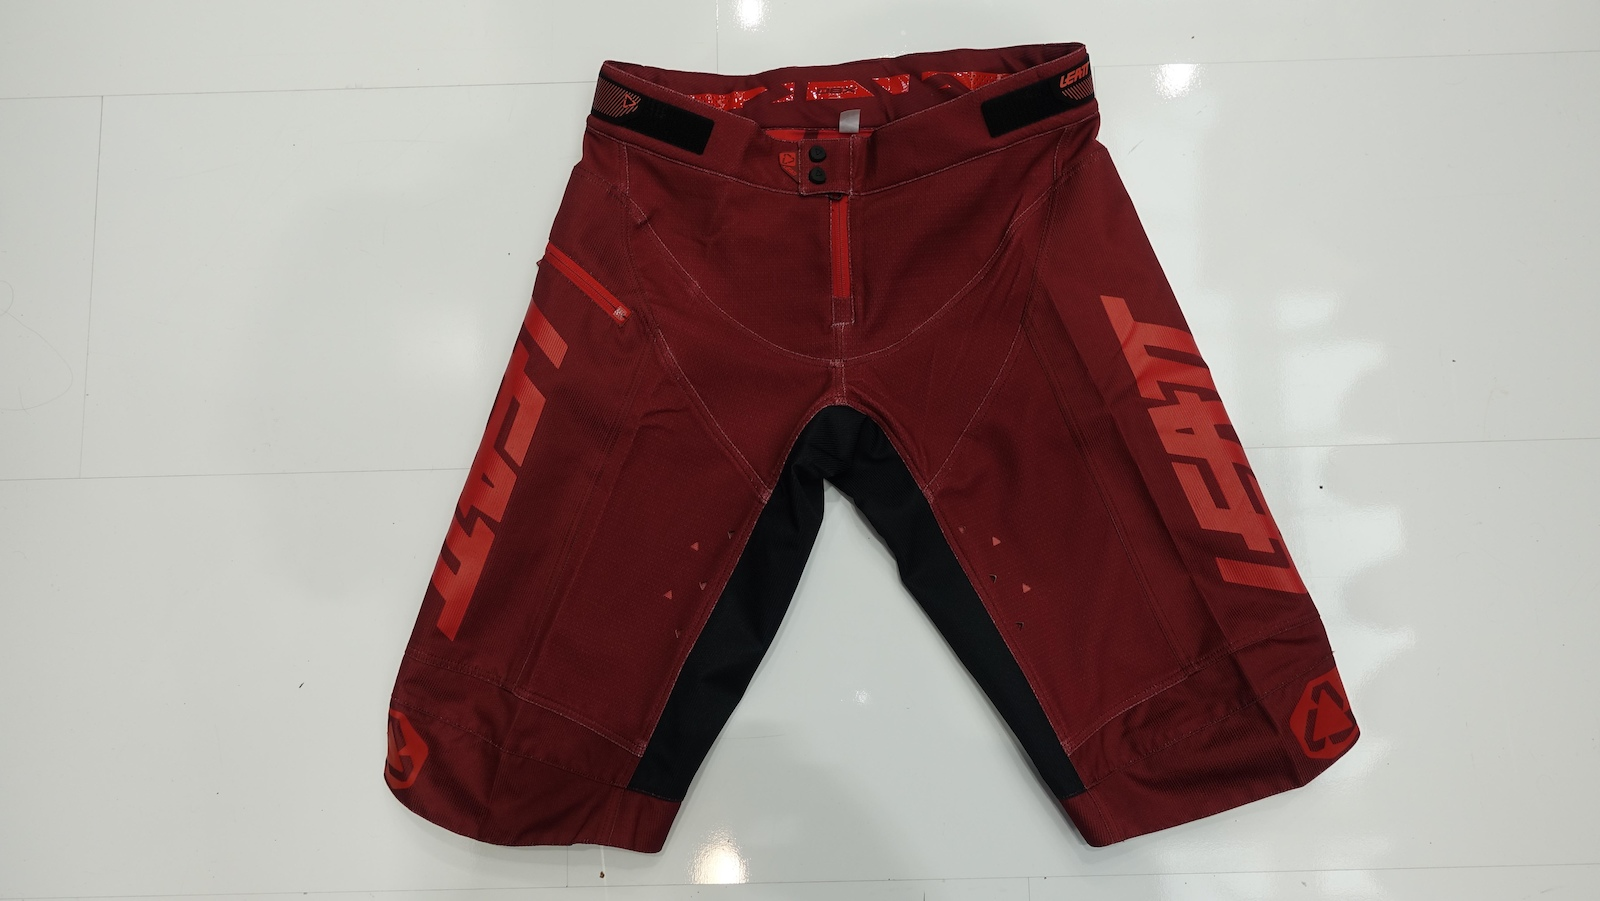 The DBX 4.0 shorts are tough and loud in red